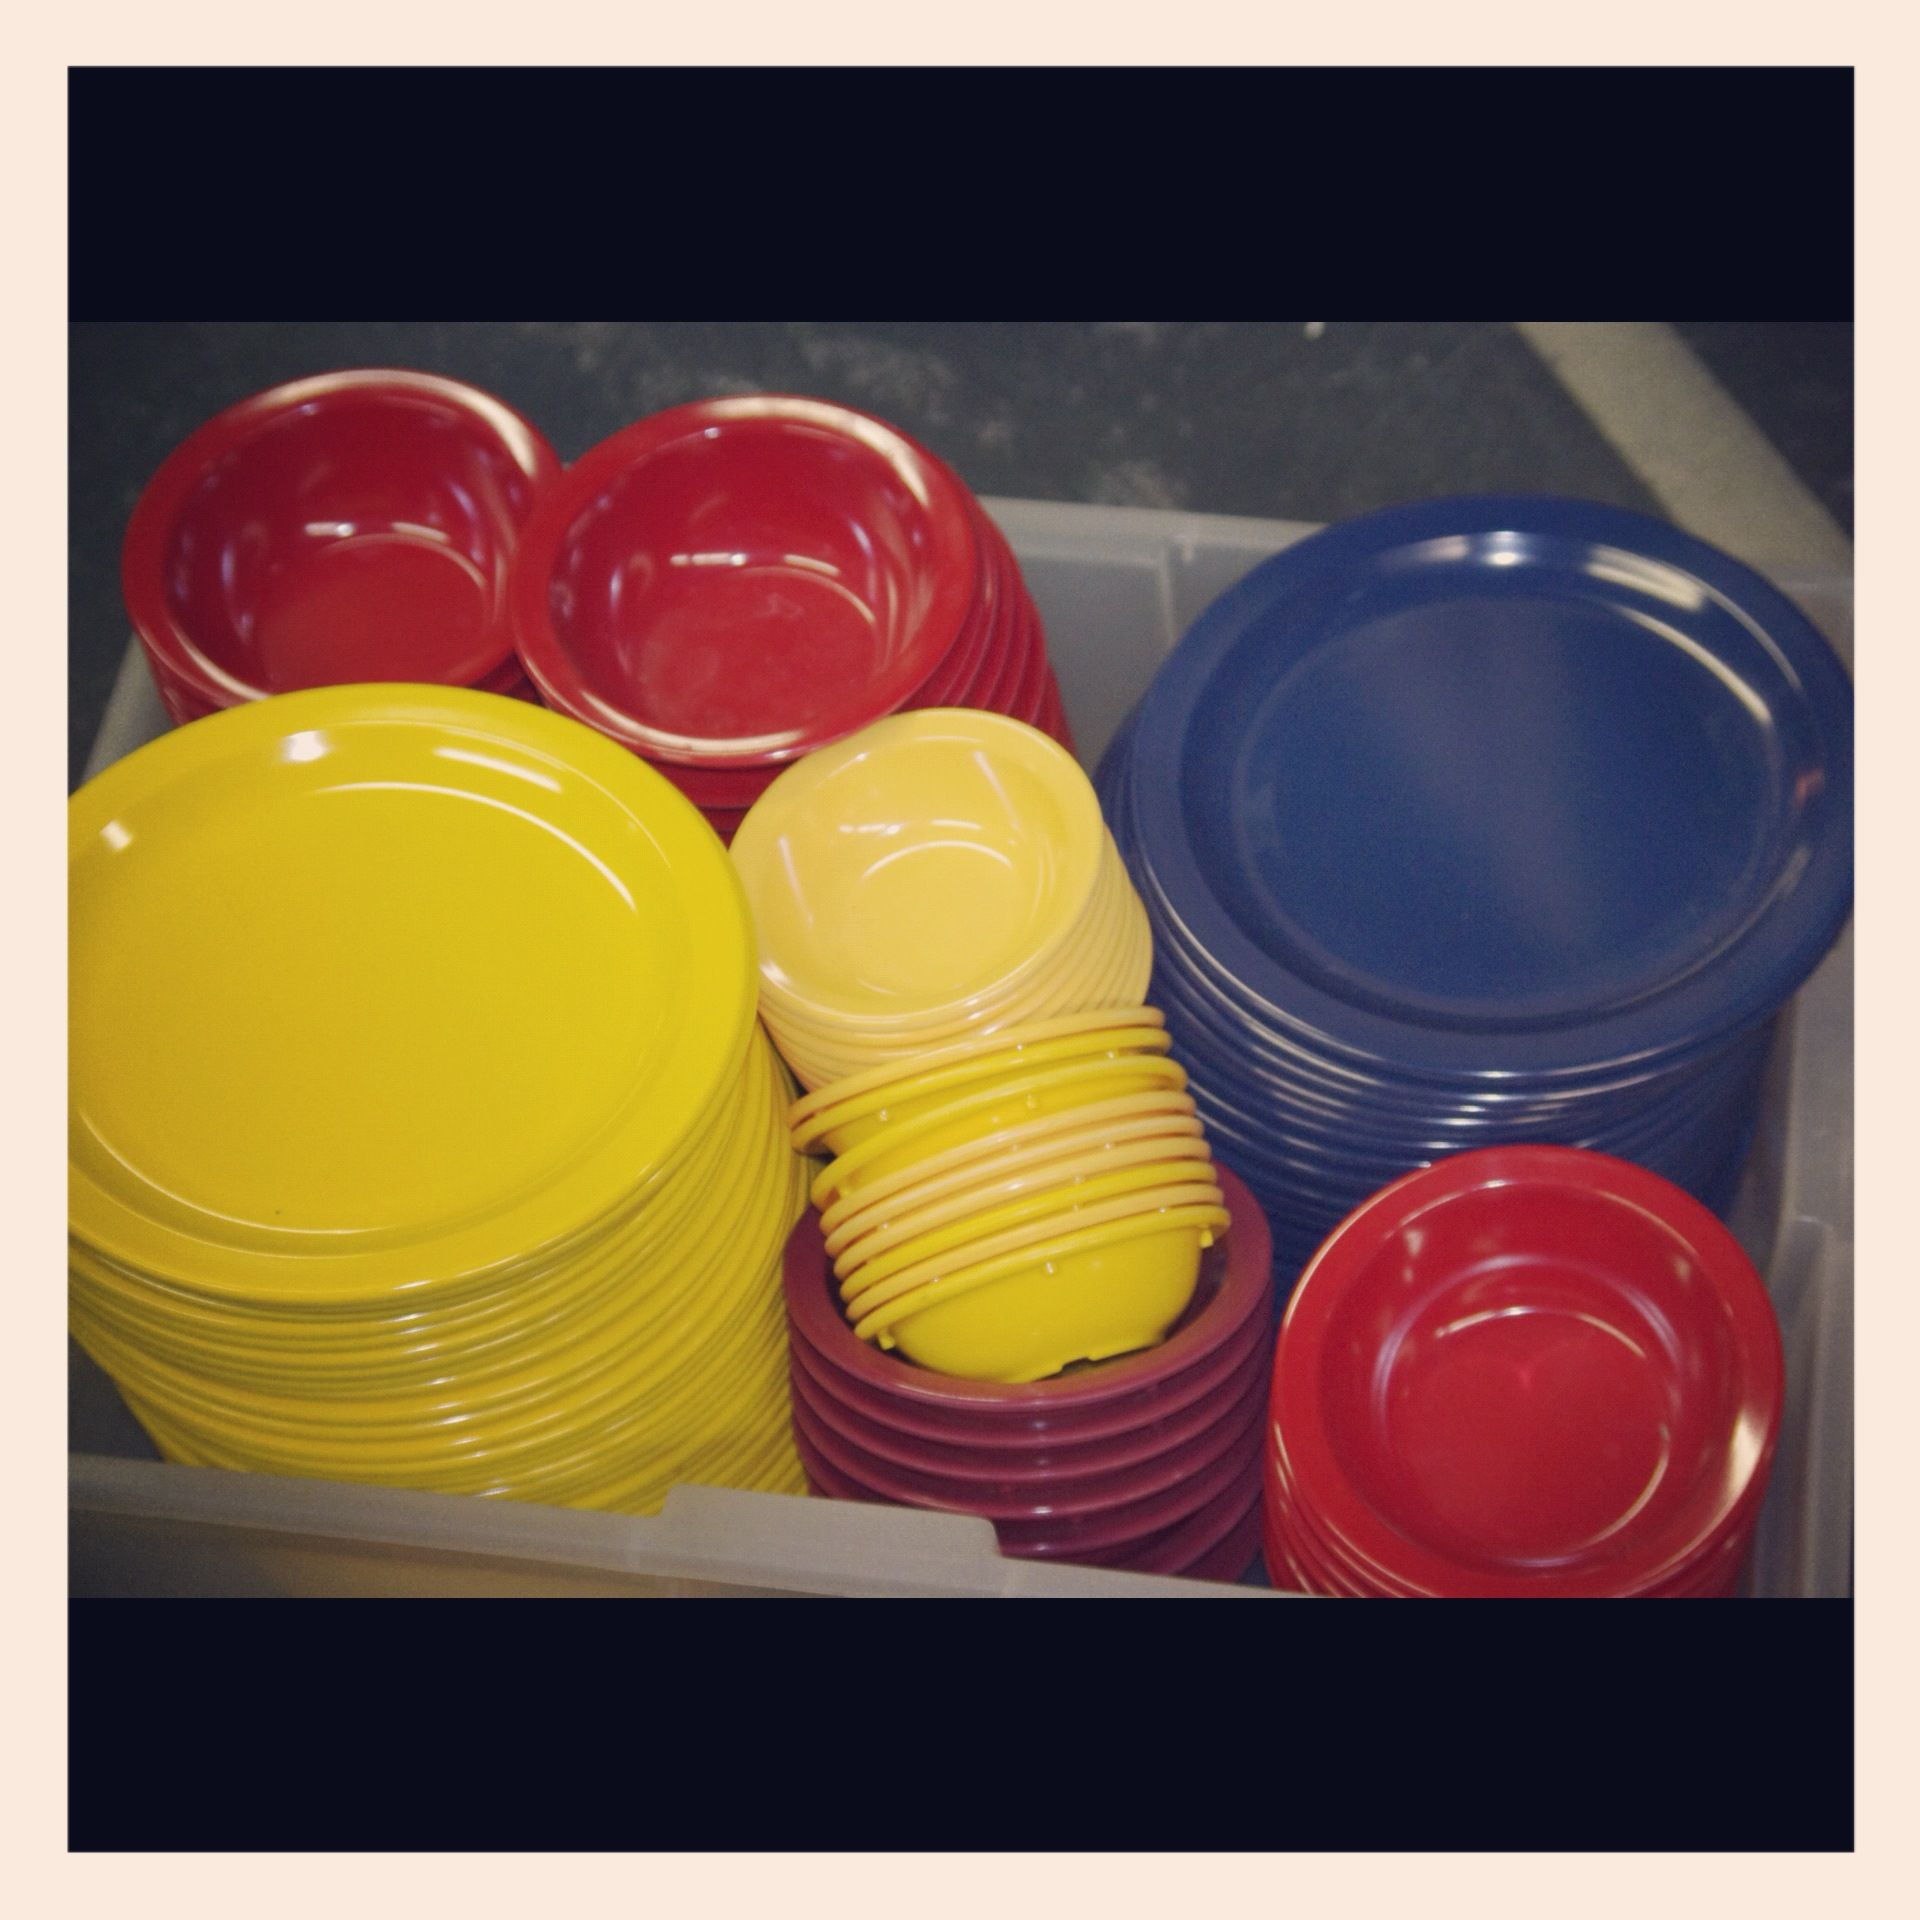 Marked Texas Ware Plates and Bowls Plates and bowls